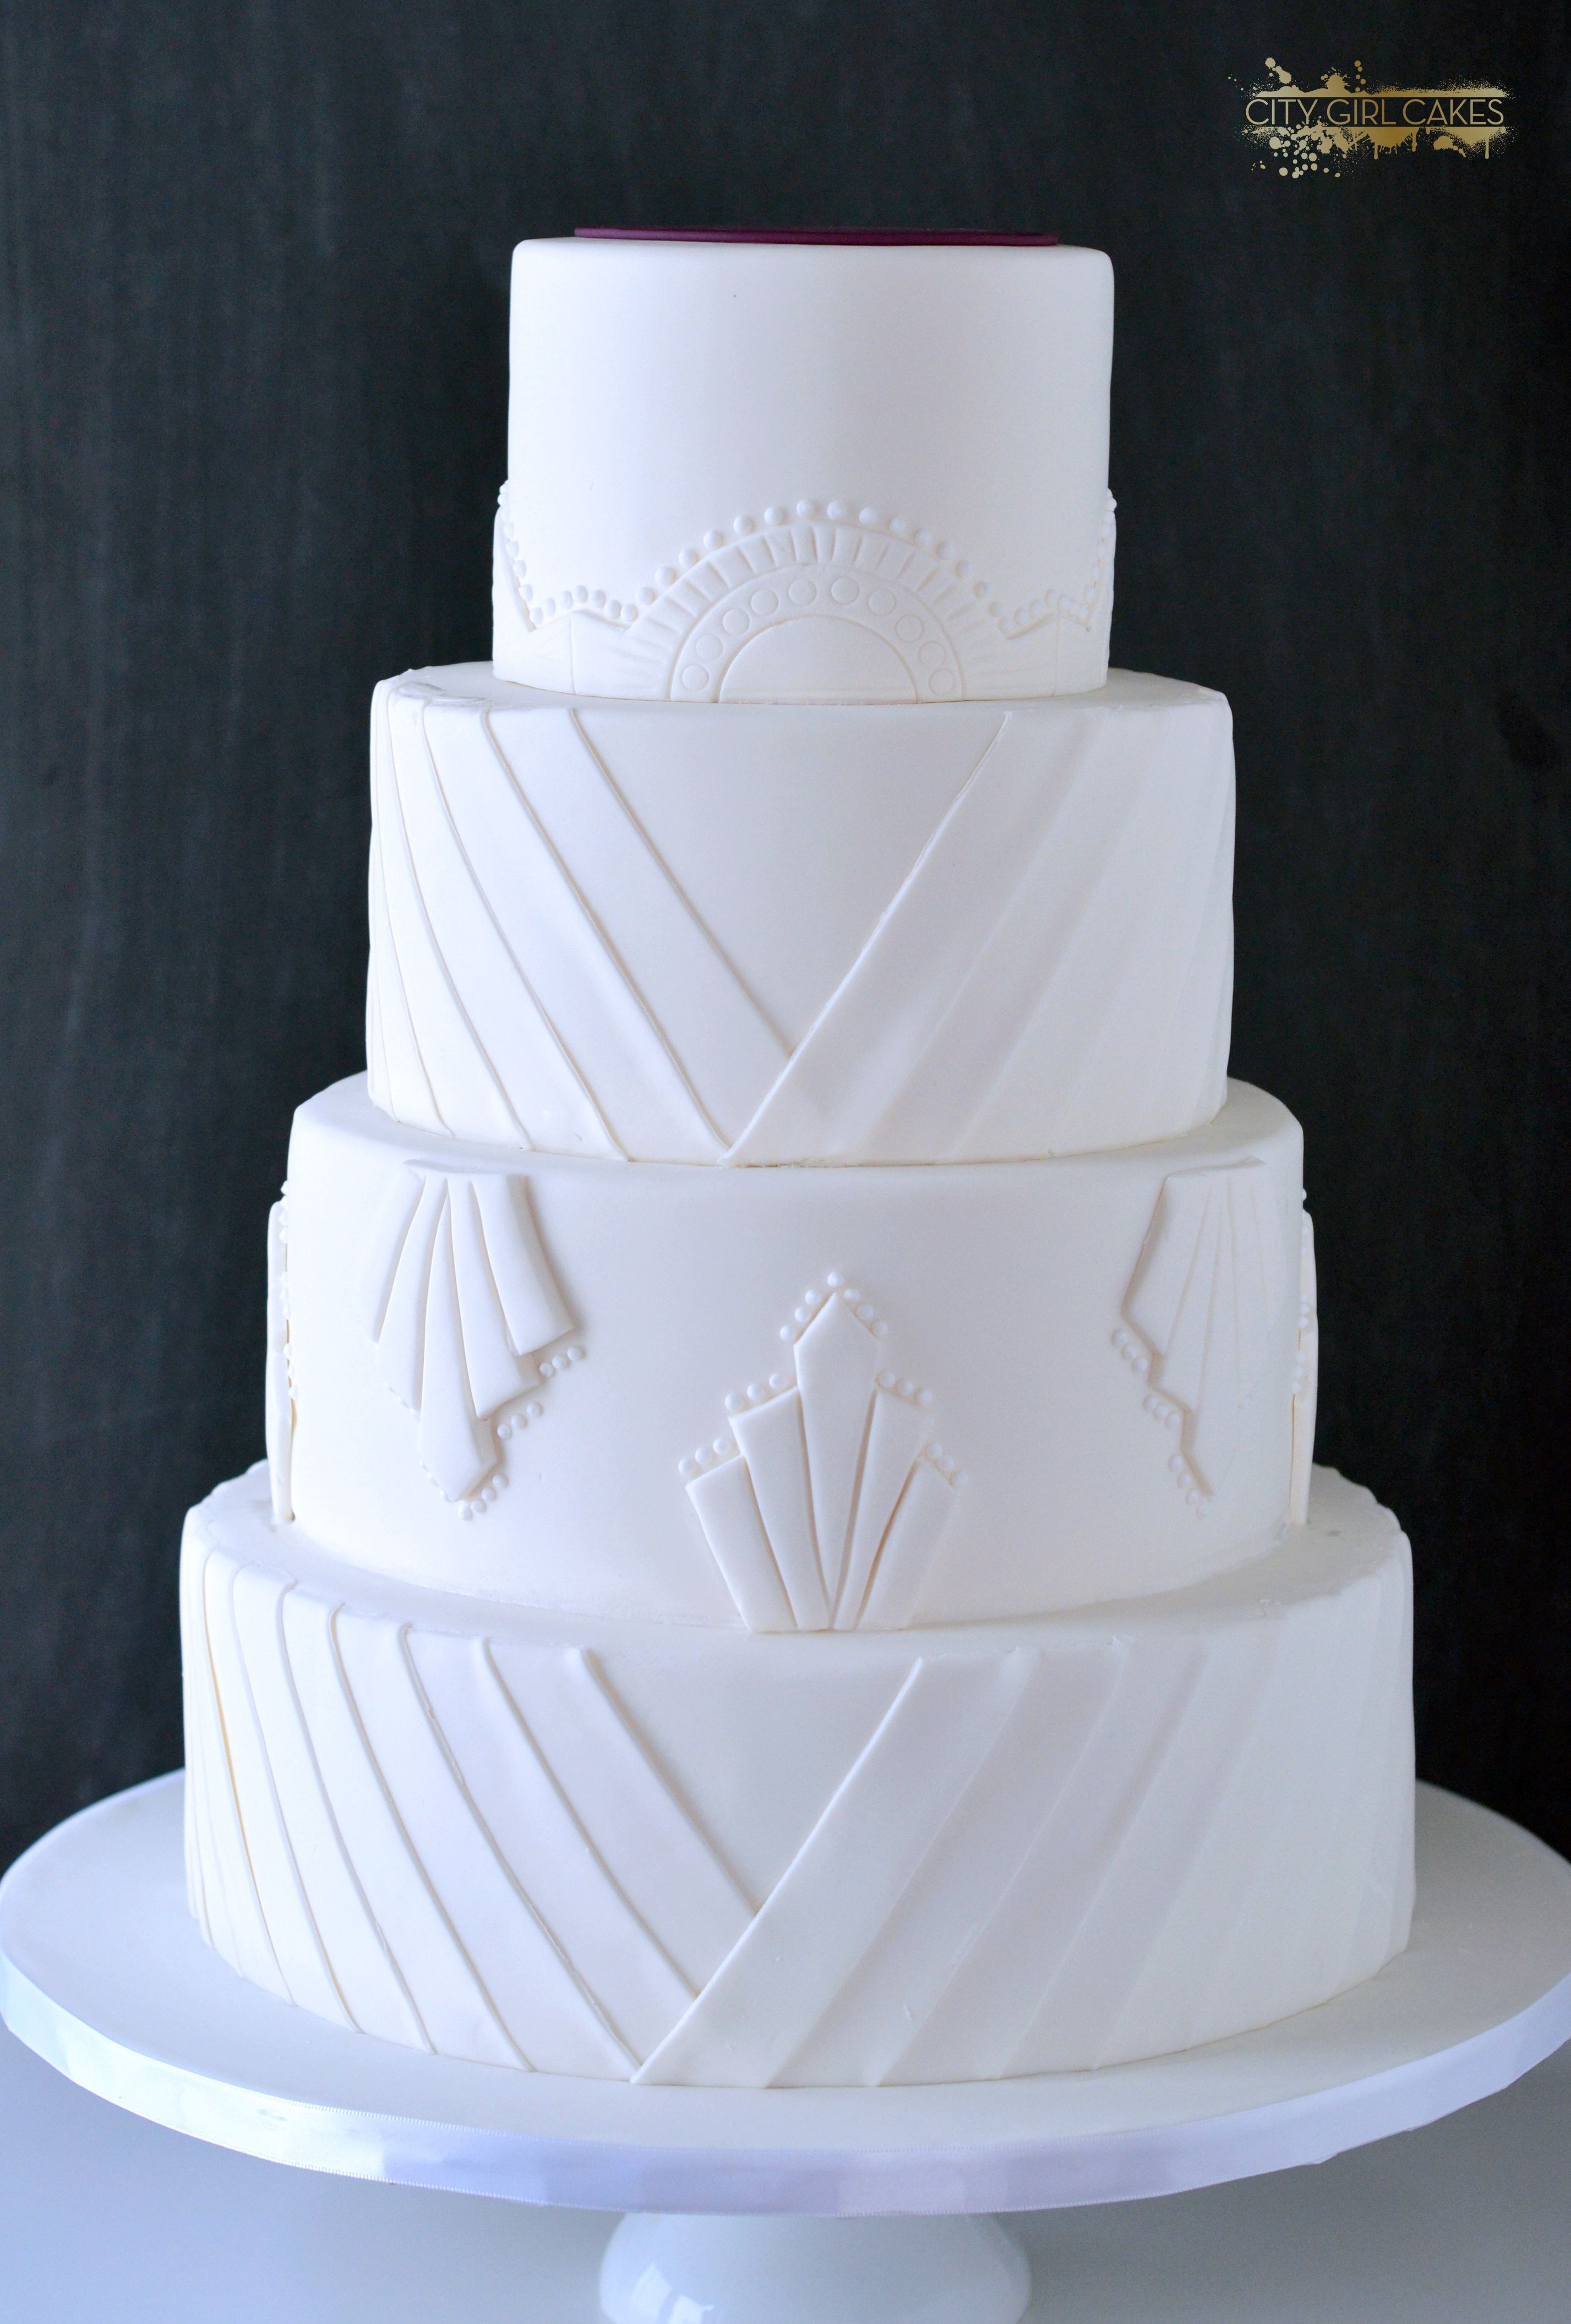 Simple Art Deco Wedding Cake 1 More Layer Than We Ll Probably Need But I Like The Style